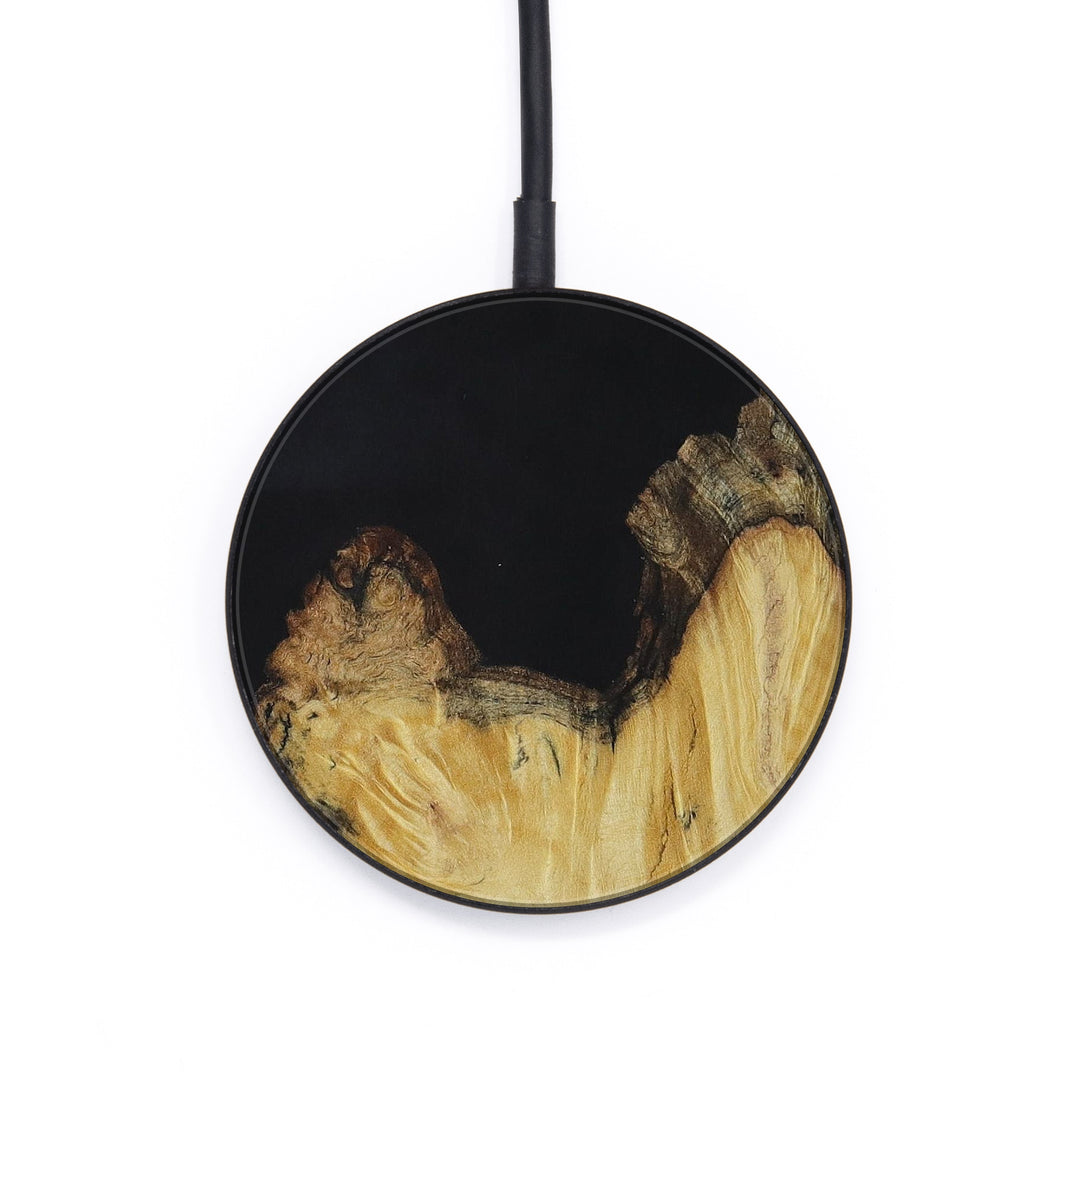 Circle Wood+Resin Wireless Charger - Bell (Pure Black, 395172)